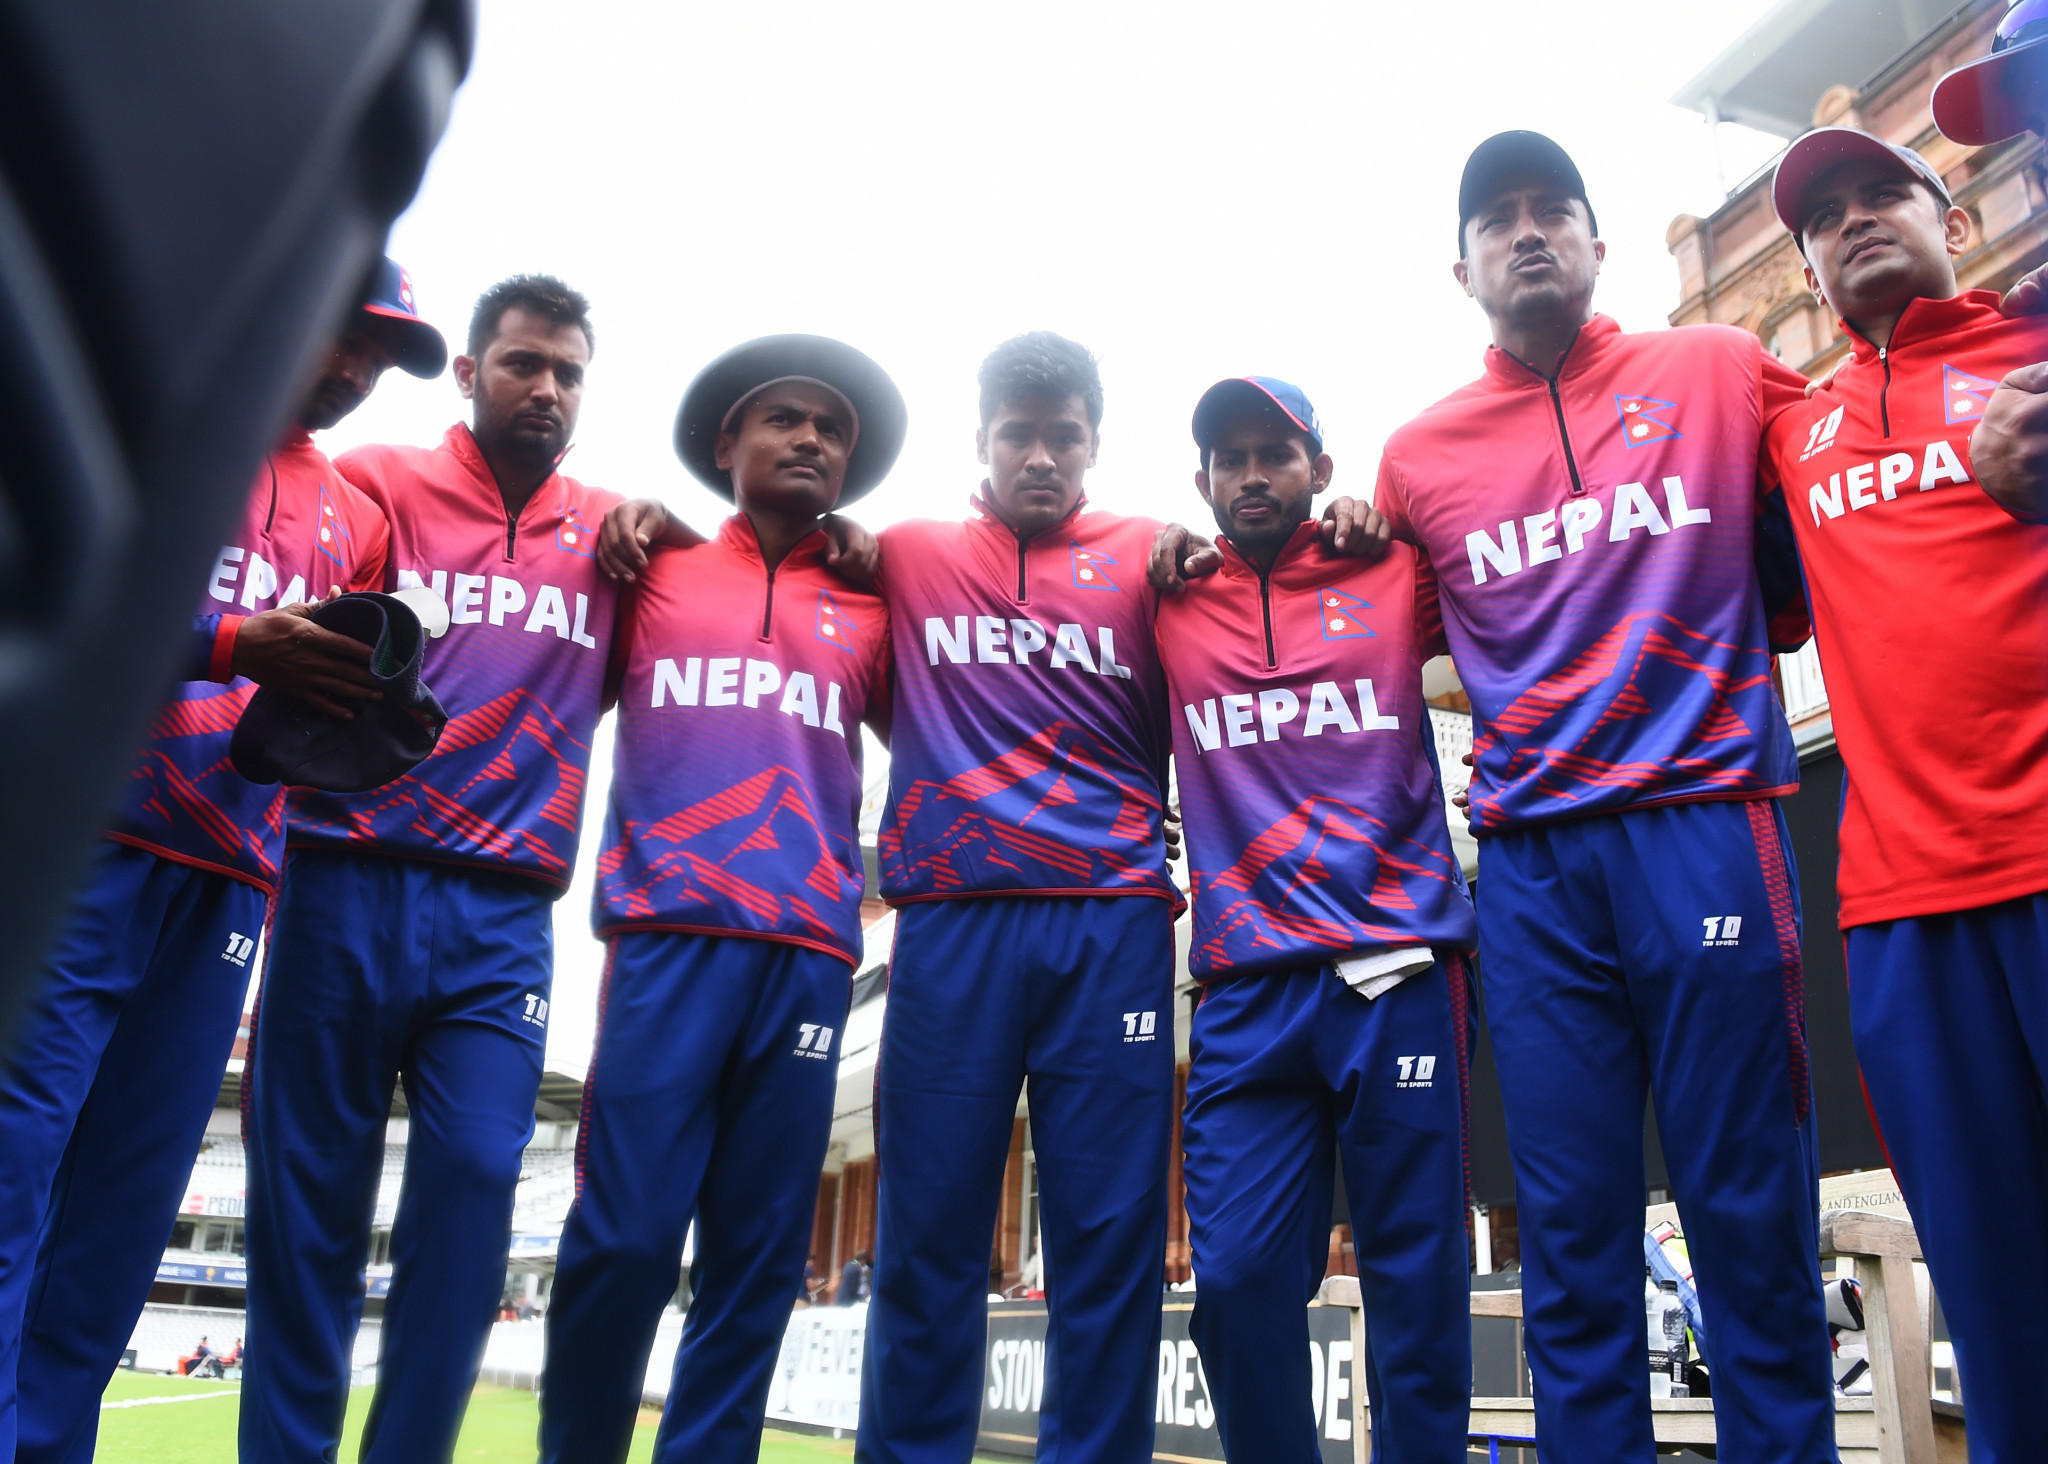 International Cricket Council close to lifting Nepal ban after elections